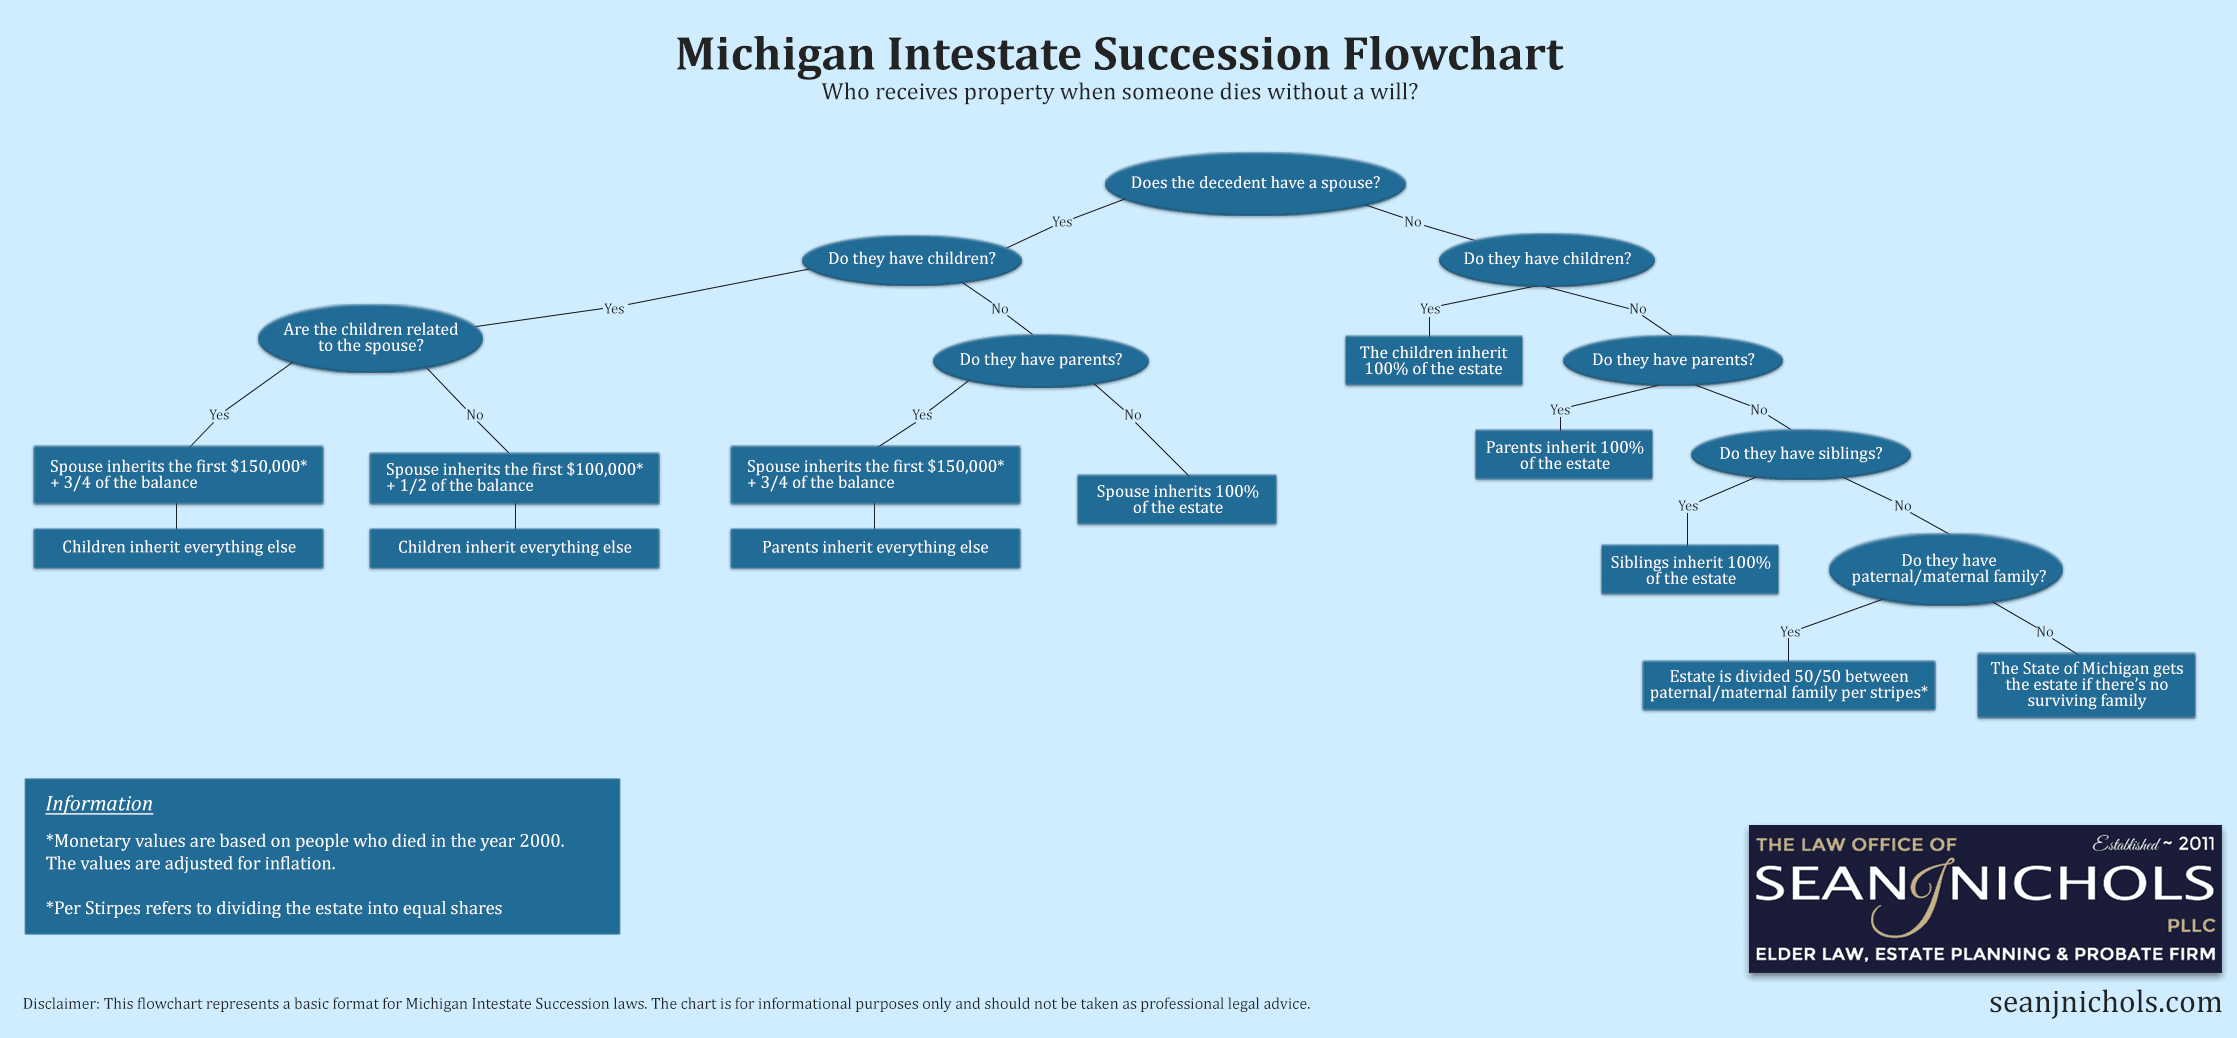 Flowchart representation of Michigan intestacy laws for probate without a will. The infographic shows which family member receives the estate starting with the spouse down through the entire paternal and maternal family of the decedent.